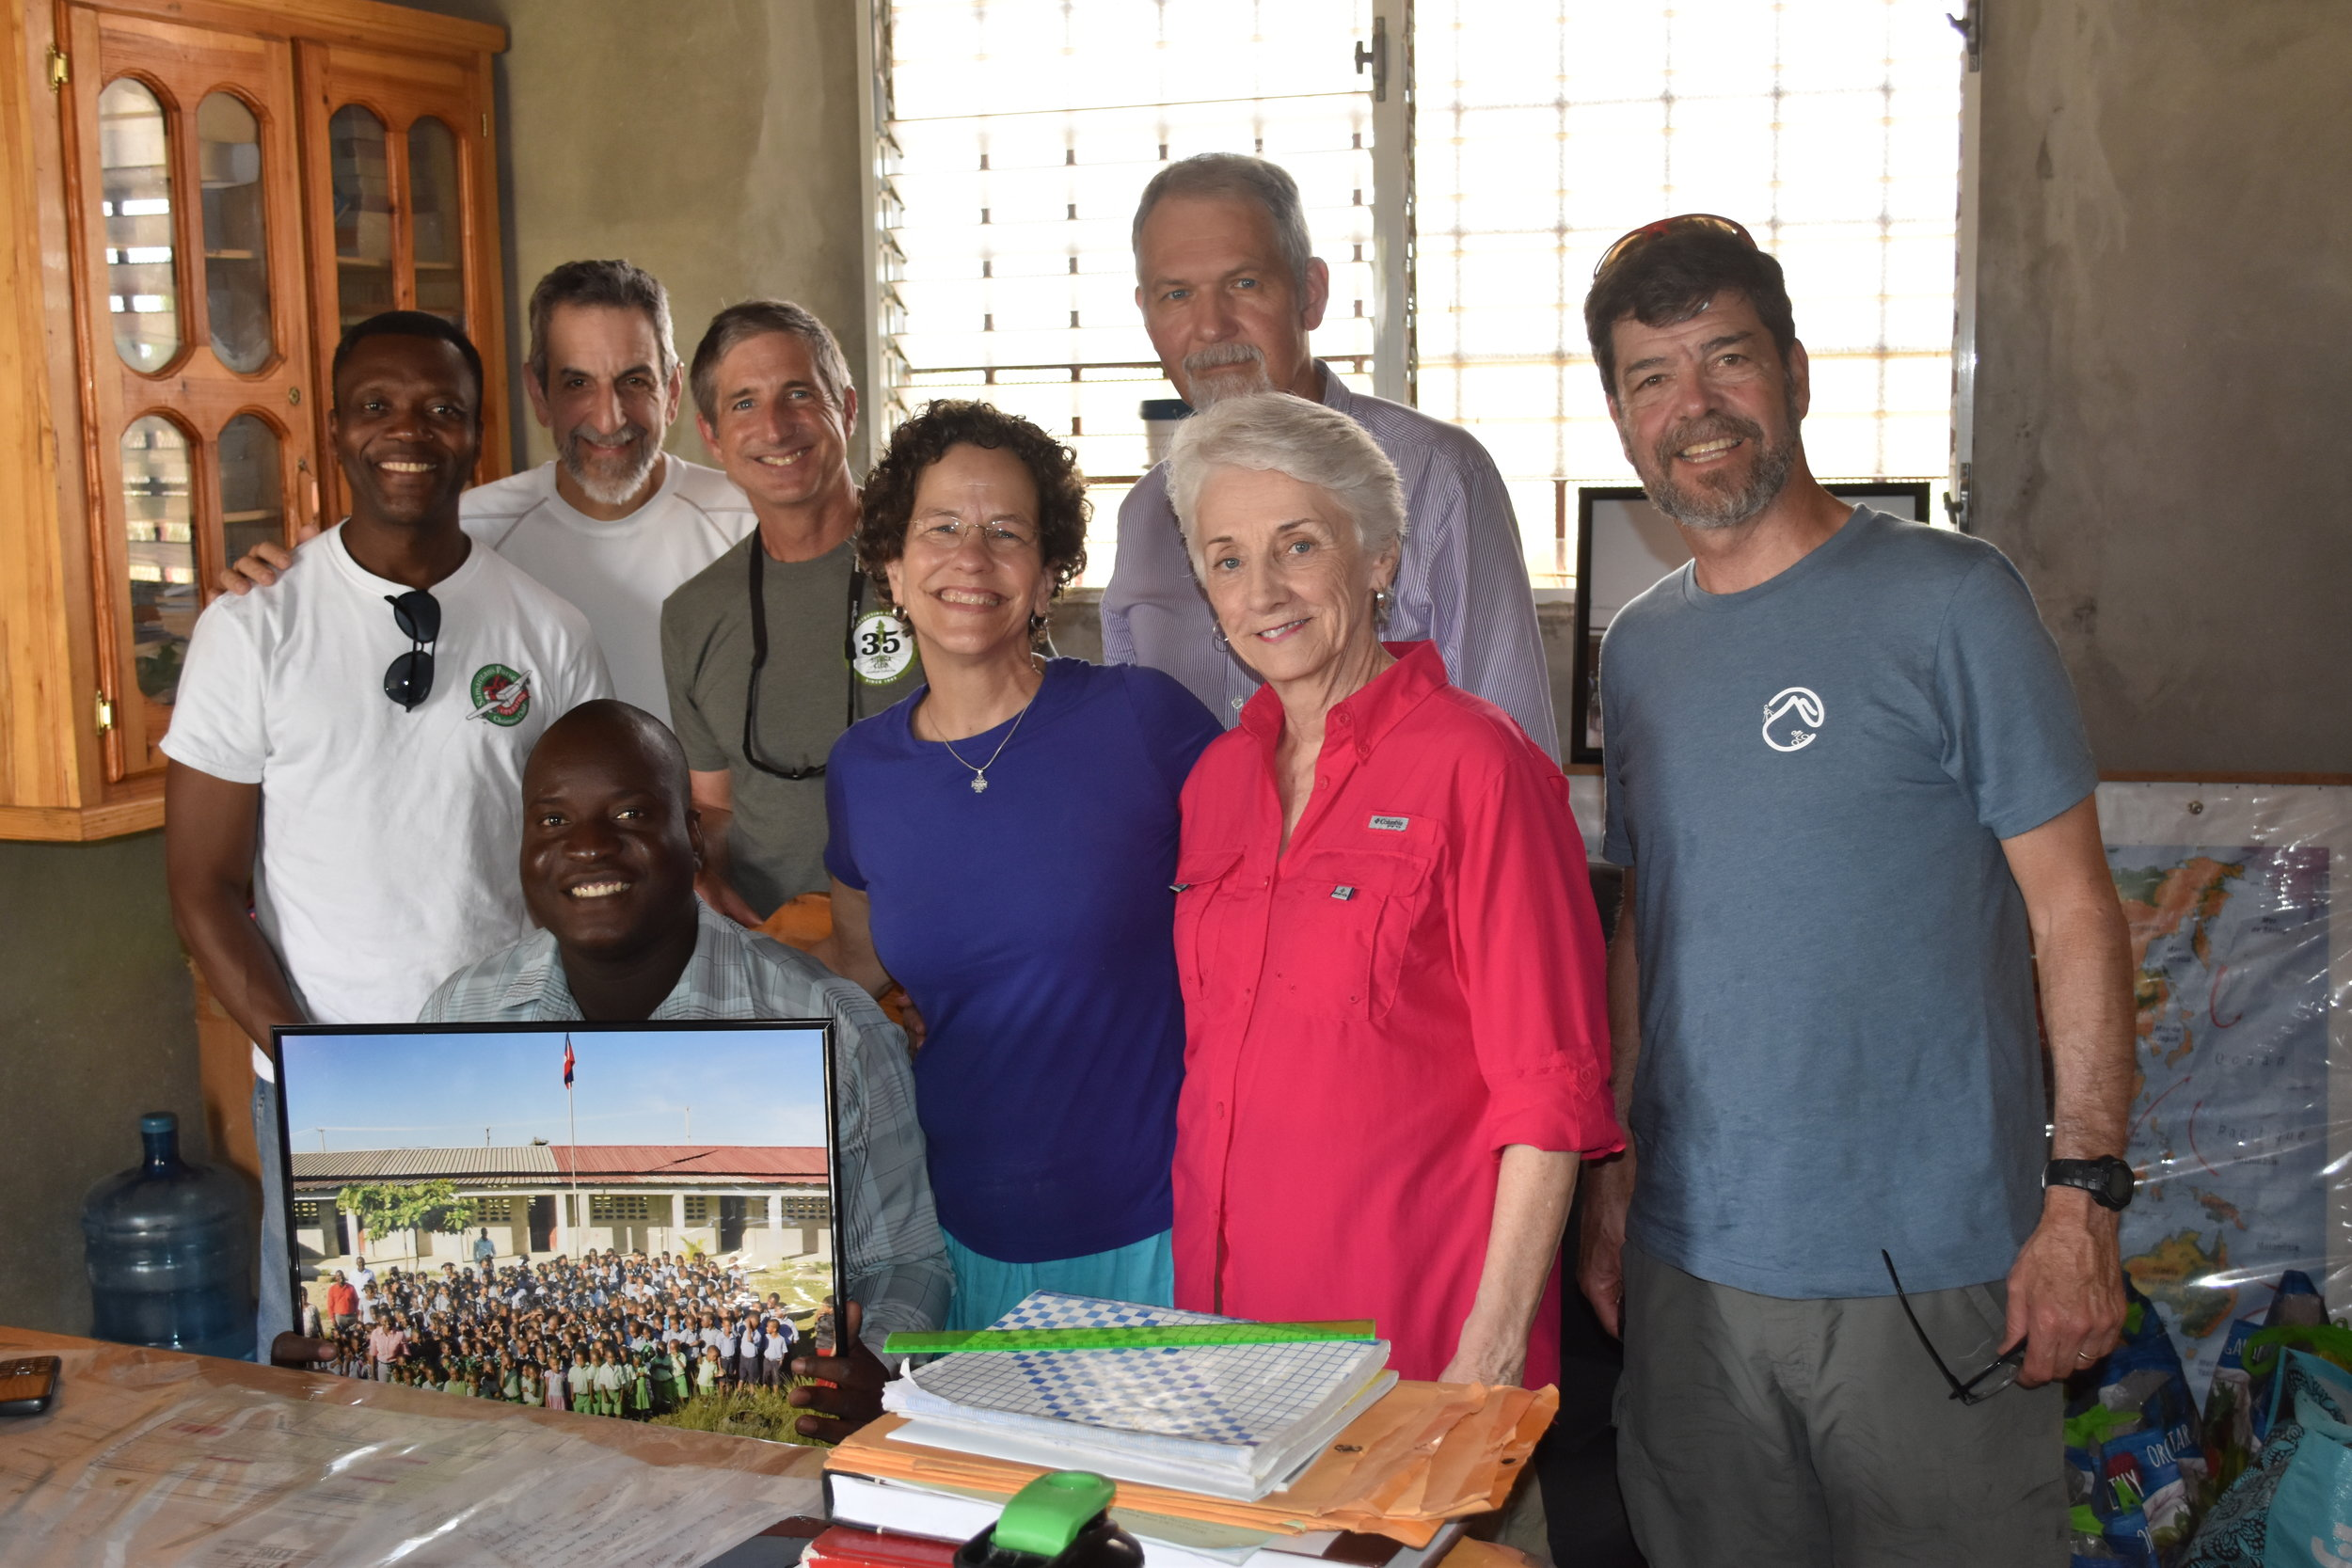 Our delegation with the principal of the school we're helping to build.